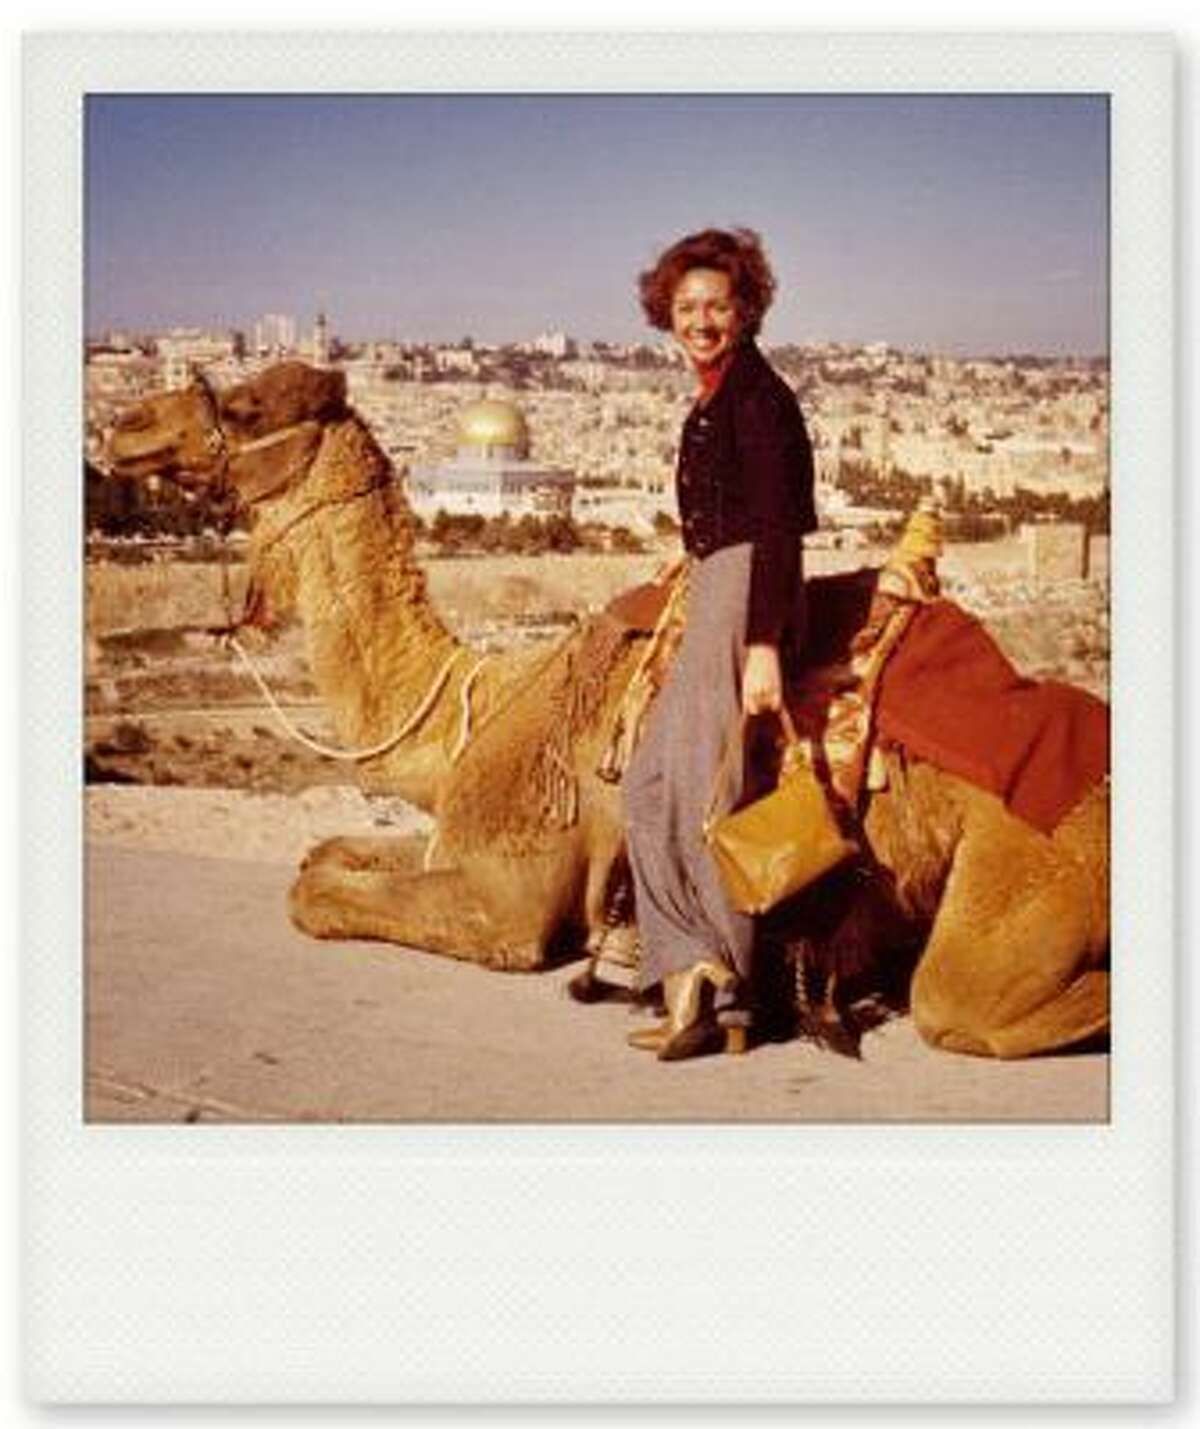 Eileen Umhoefer has been a travel agent in Denver for 50 years and has traveled all over the world.